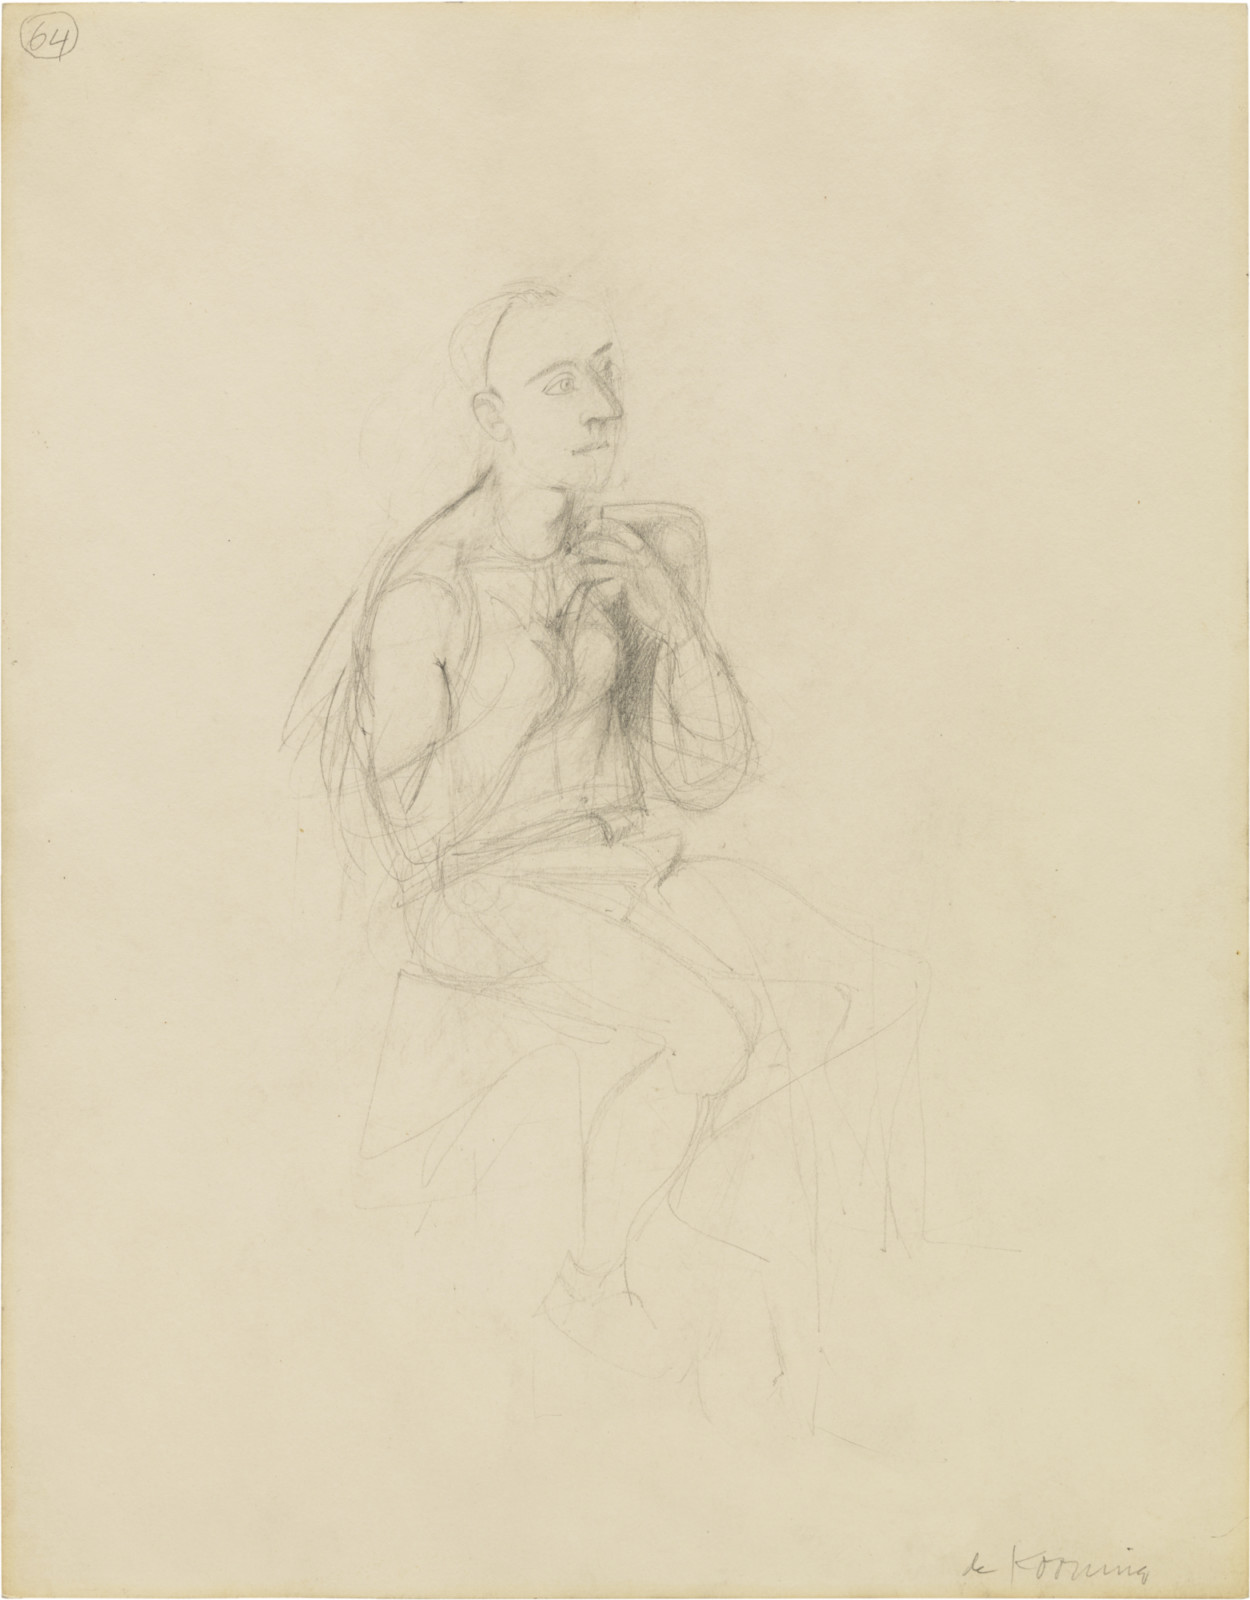 Drawing, dated 1938